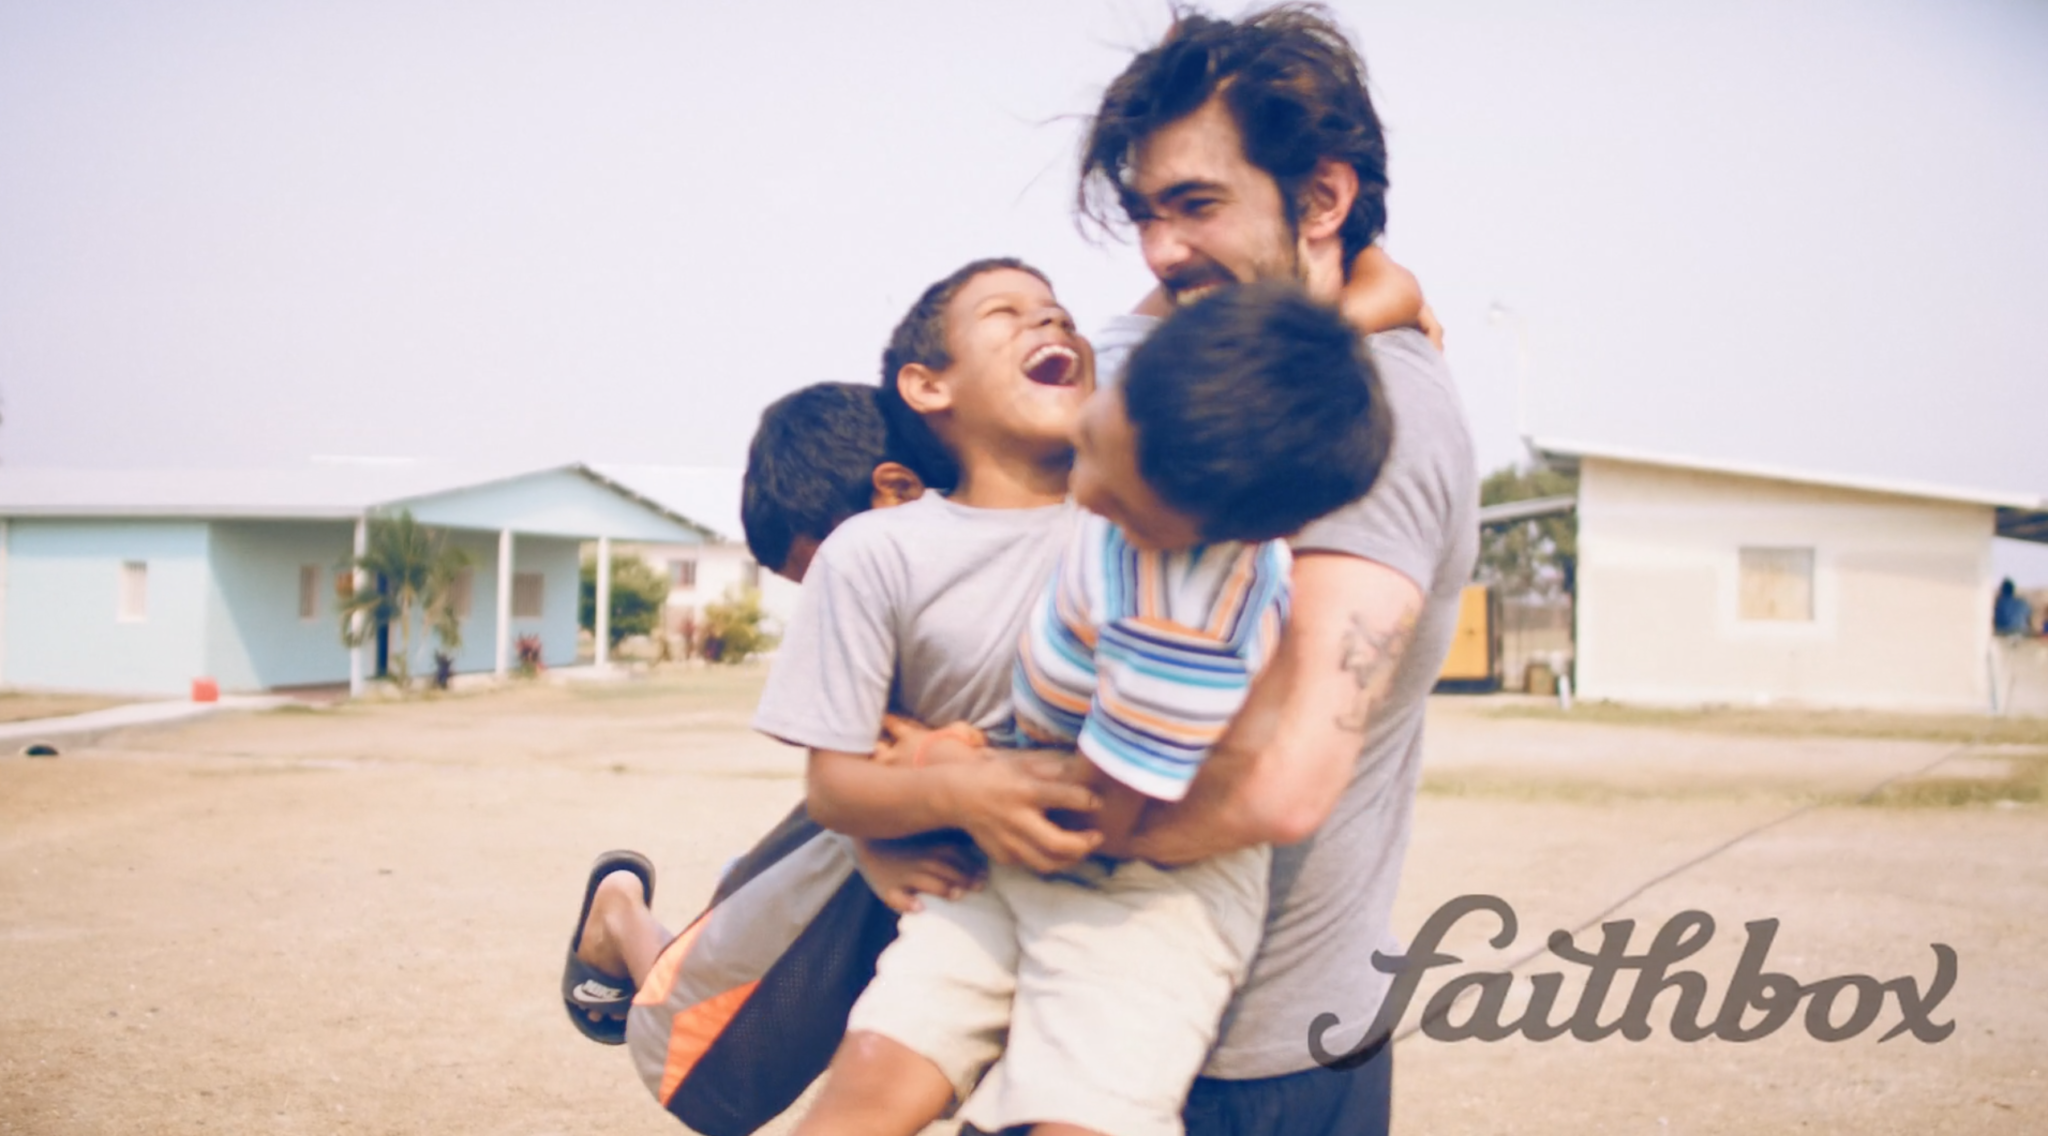 Faithbox: Honduras